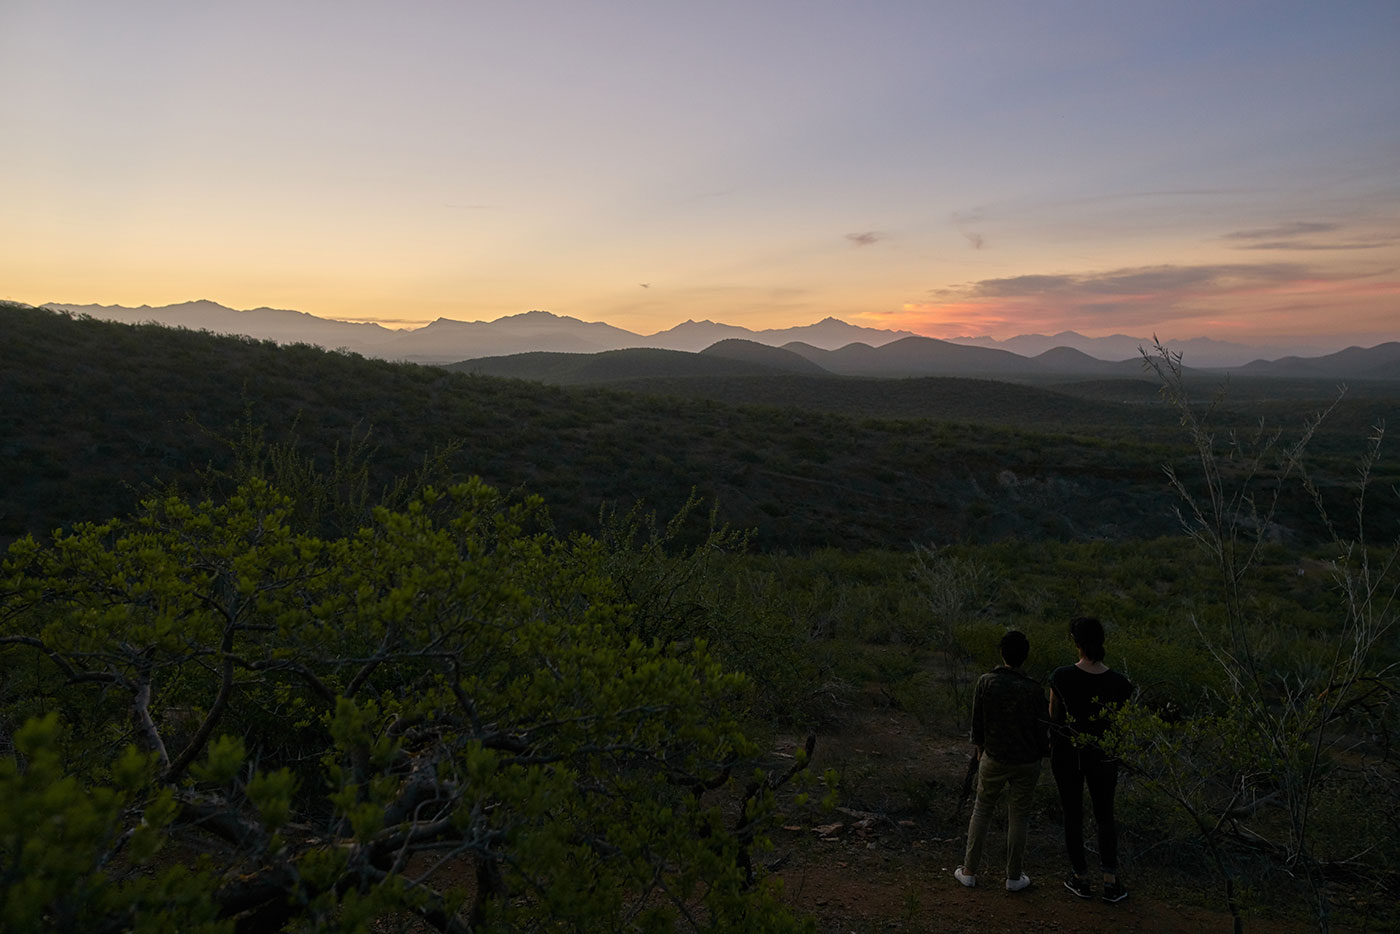 View of the Todos Santos General Mountain at sunrise